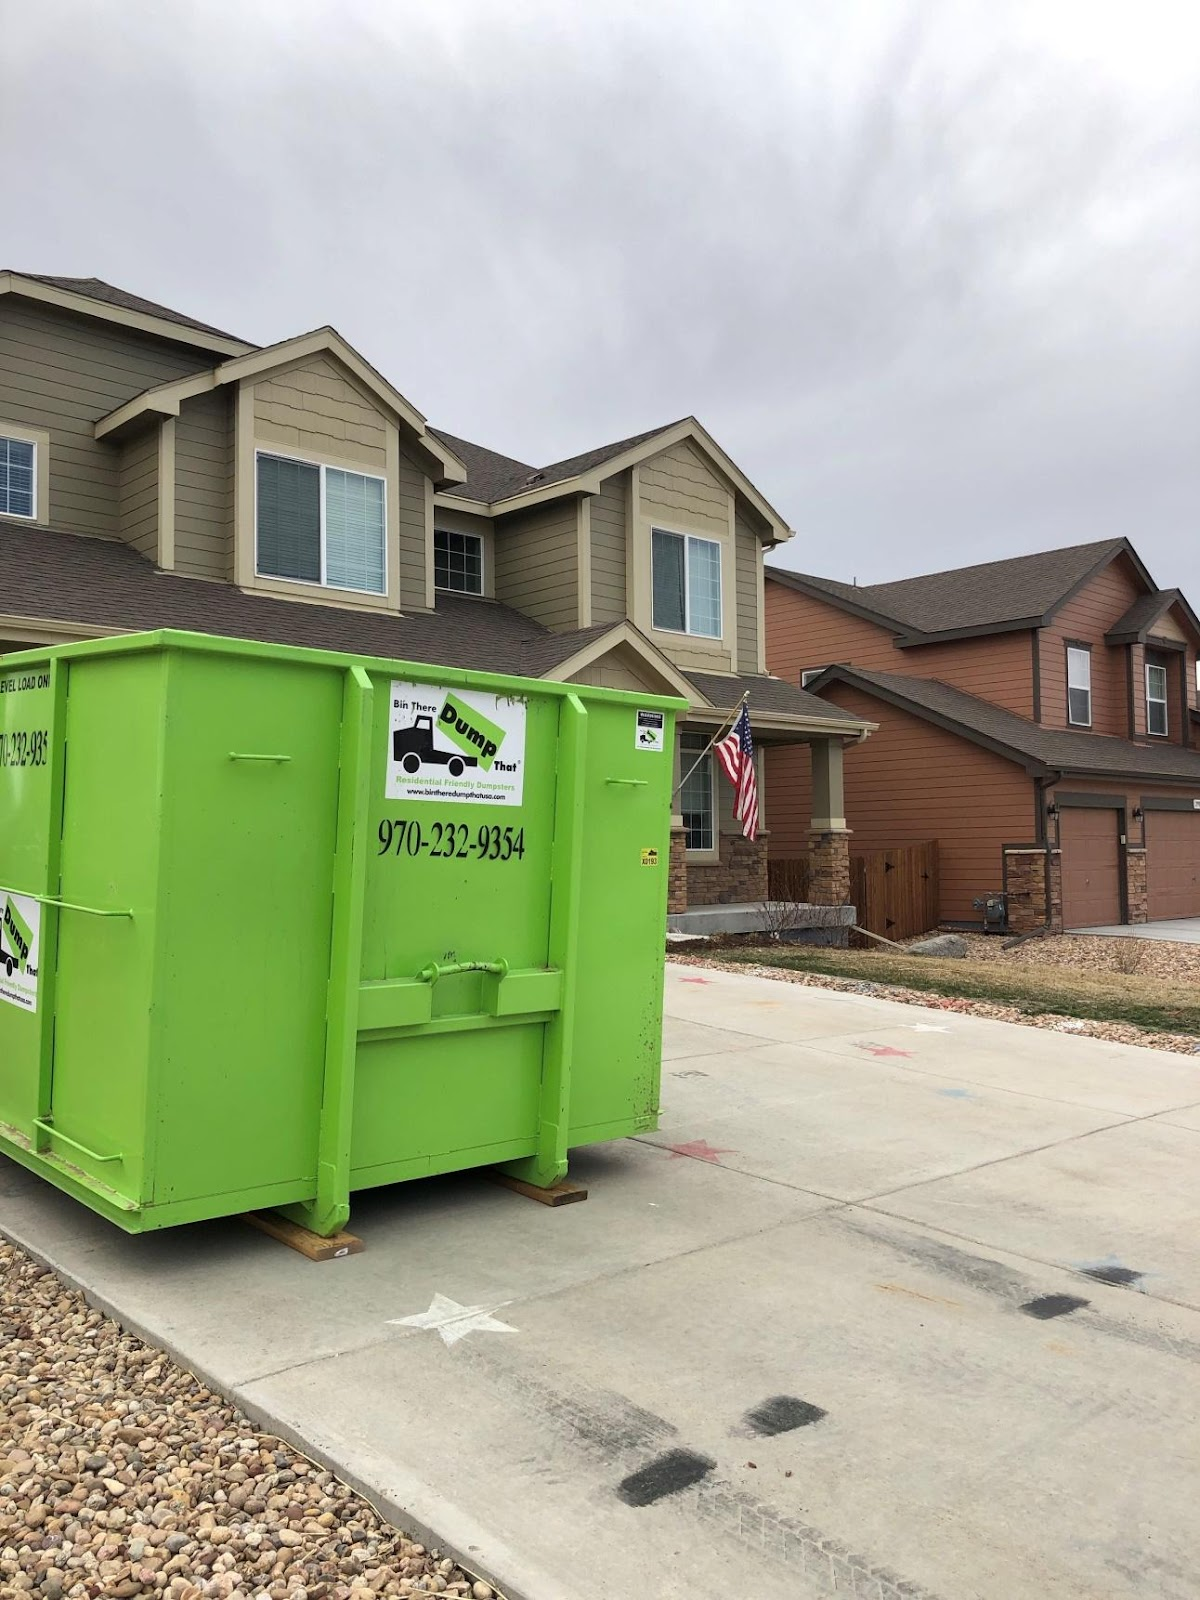 Bin There Dump That best of HomeAdvisor